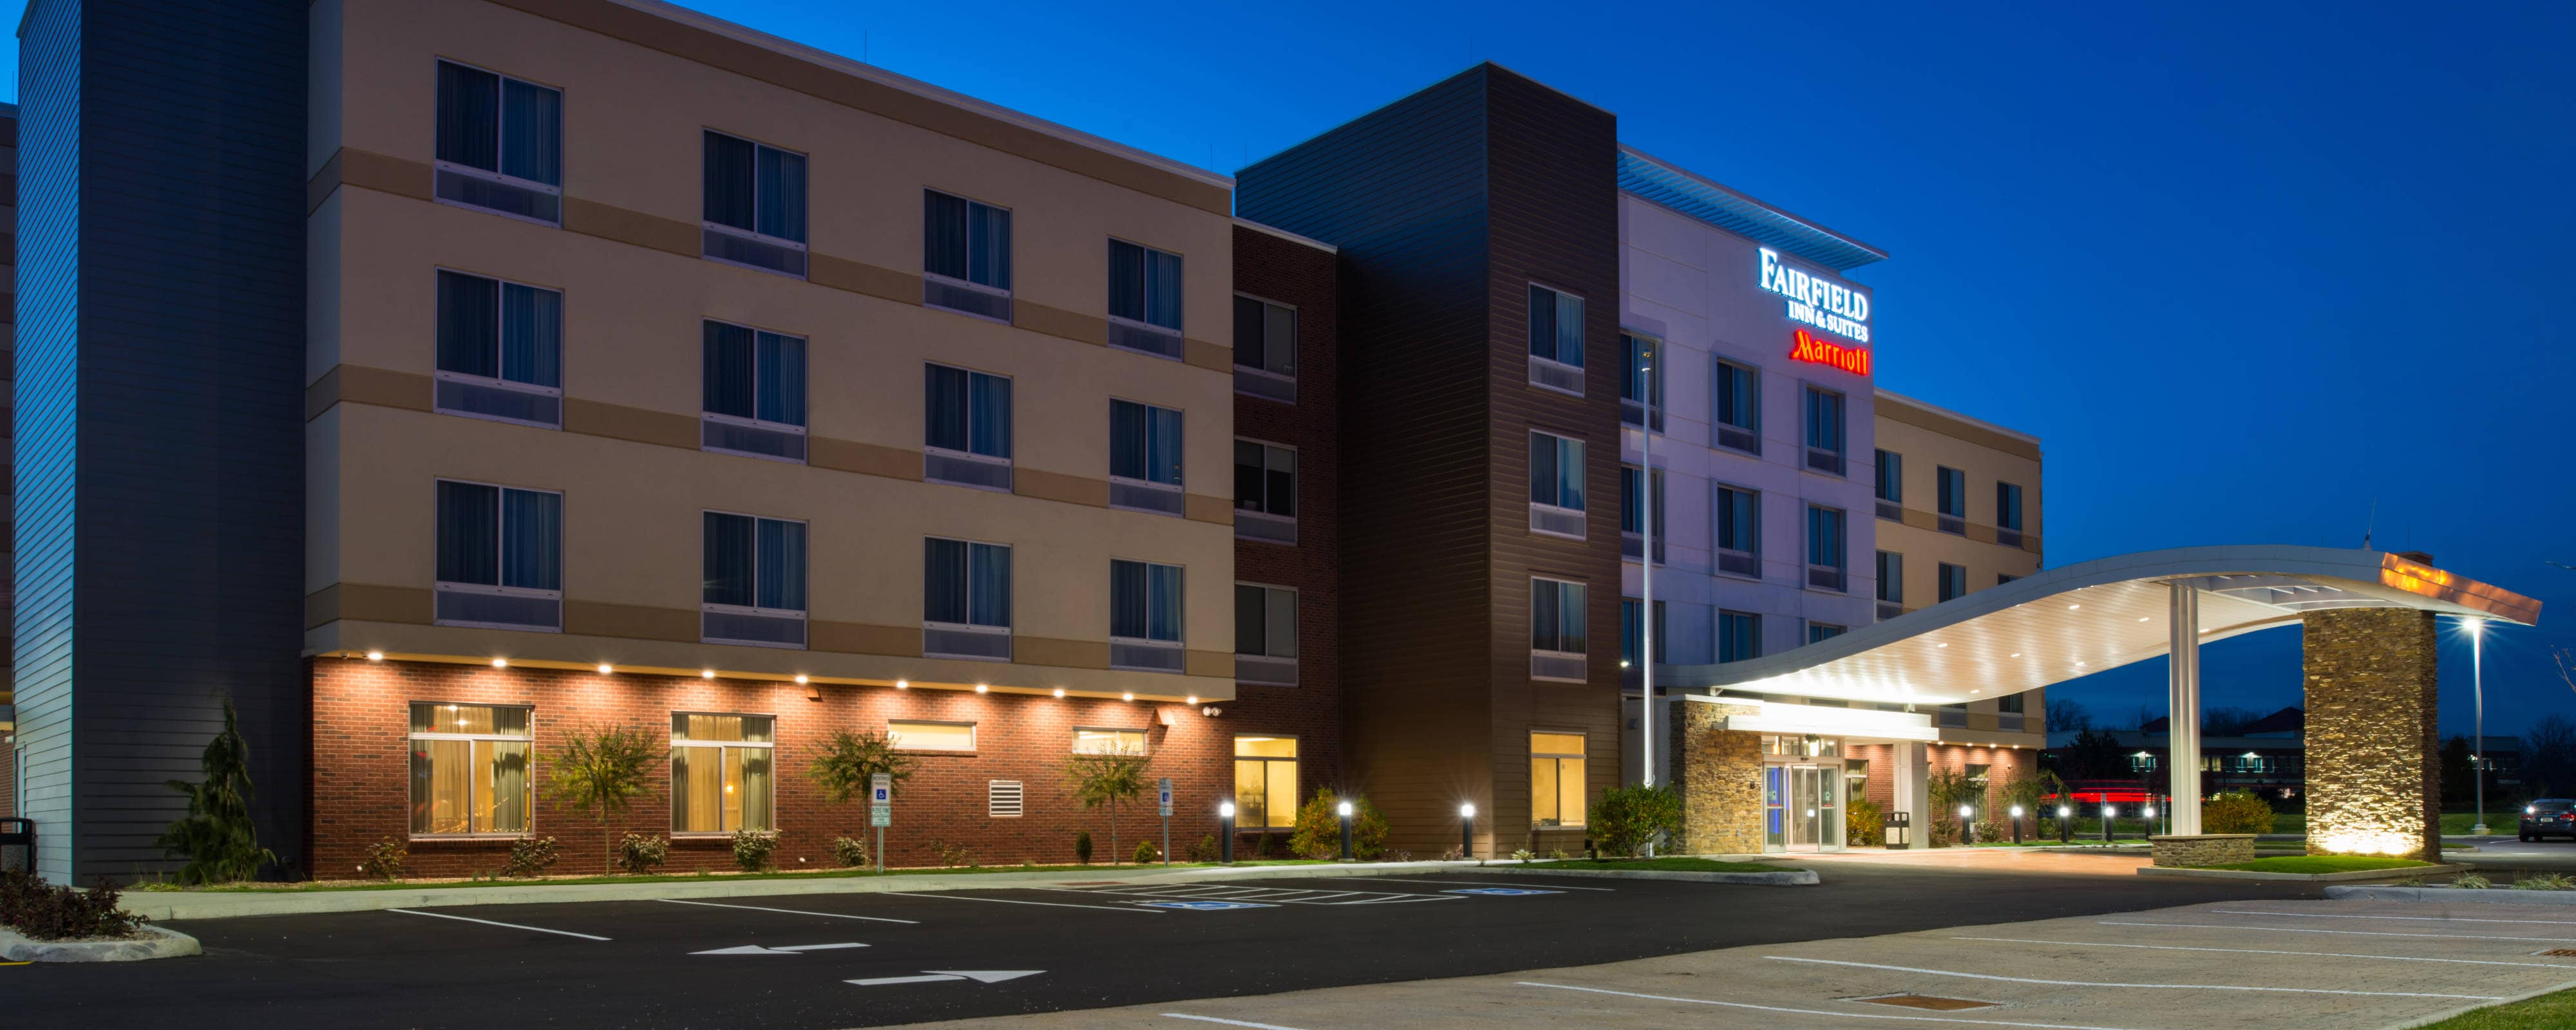 Hotels Near Akron Oh With Free Wi Fi Fairfield Inn Suites Stow